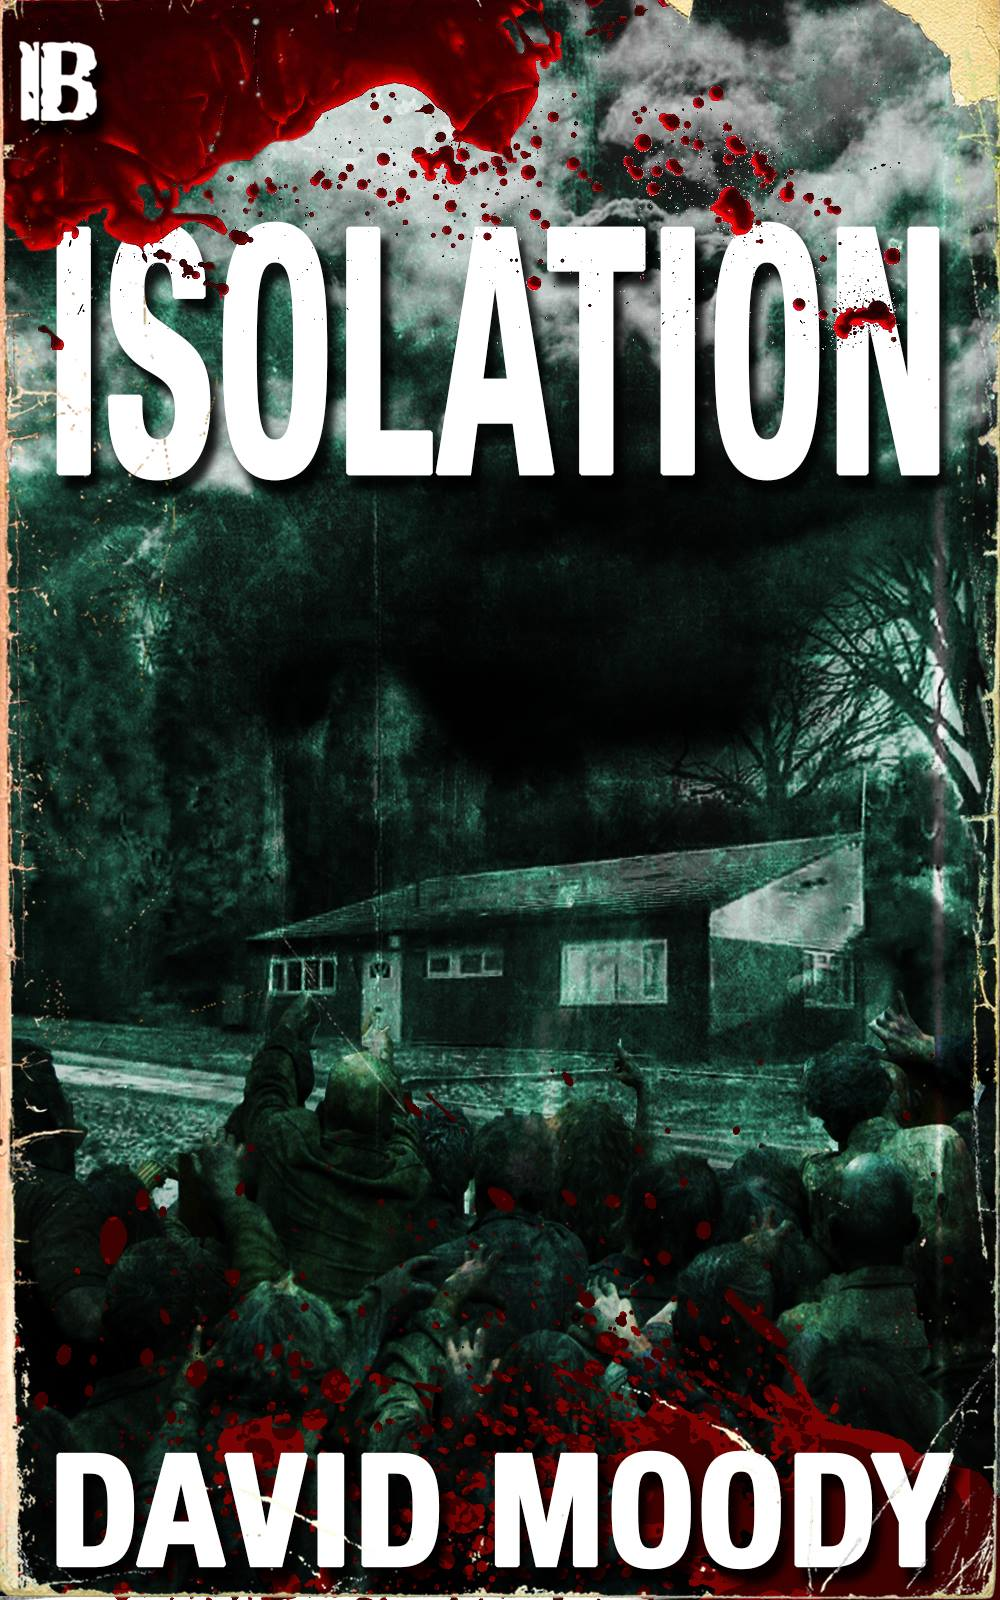 Isolation by David Moody (Infected Books 2014)